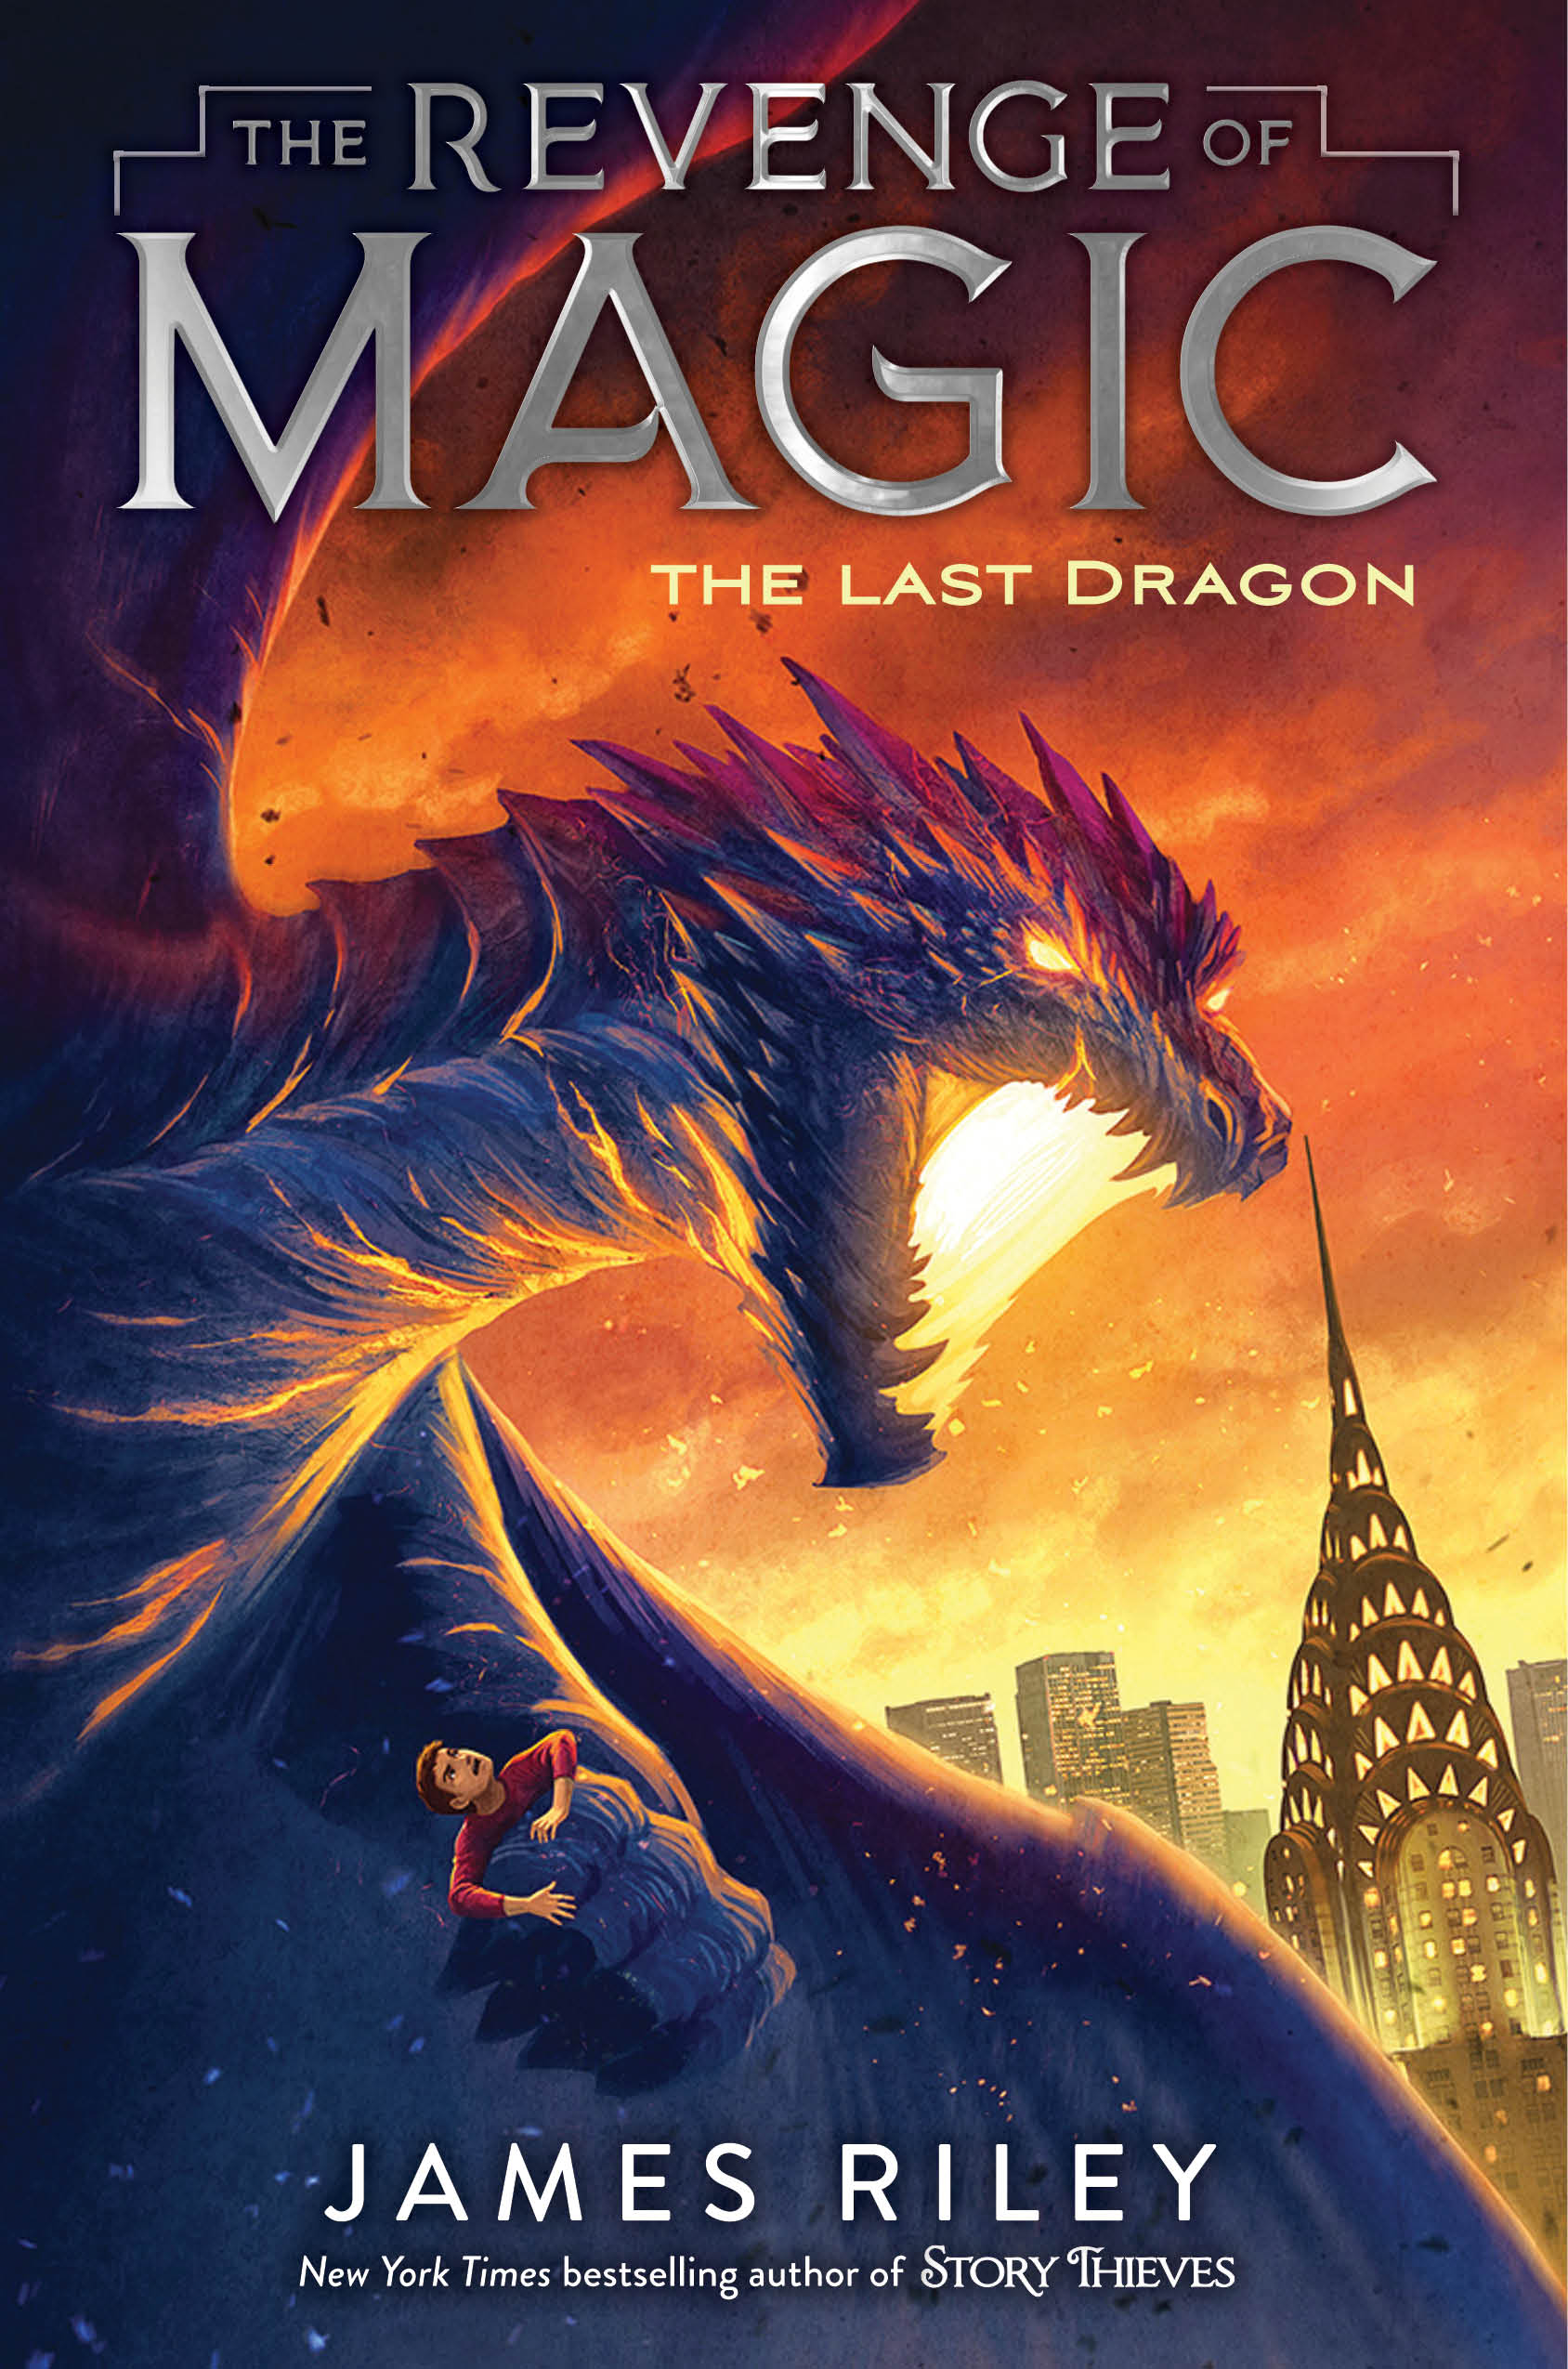 THE LAST DRAGON (BOOK 2) - Fort Fitzgerald can't stop having nightmares about the day his father was taken from him in an attack on Washington, D.C. In these dreams, an Old One, an evil beyond comprehension, demands the location of the last dragon. But other than some dragon skeletons dug up with the books of magic on Discovery Day, Fort has never seen a dragon before. Could there still be one left alive?And weirdly, Fort's not the only one at the Oppenheimer School having these nightmares. His new roommate, Gabriel, seems to know more than he's letting on about this dragon as well. And why does everyone at the school seem to do whatever Gabriel says? What's his secret?Fort's going to need the help of his friends Cyrus, Jia and Rachel, if he's going to have any chance of keeping the Old Ones from returning to Earth. Unless, the Old Ones offer something Fort could never turn down ....BUY: AMAZON | BARNES & NOBLE | INDEPENDENT STORES